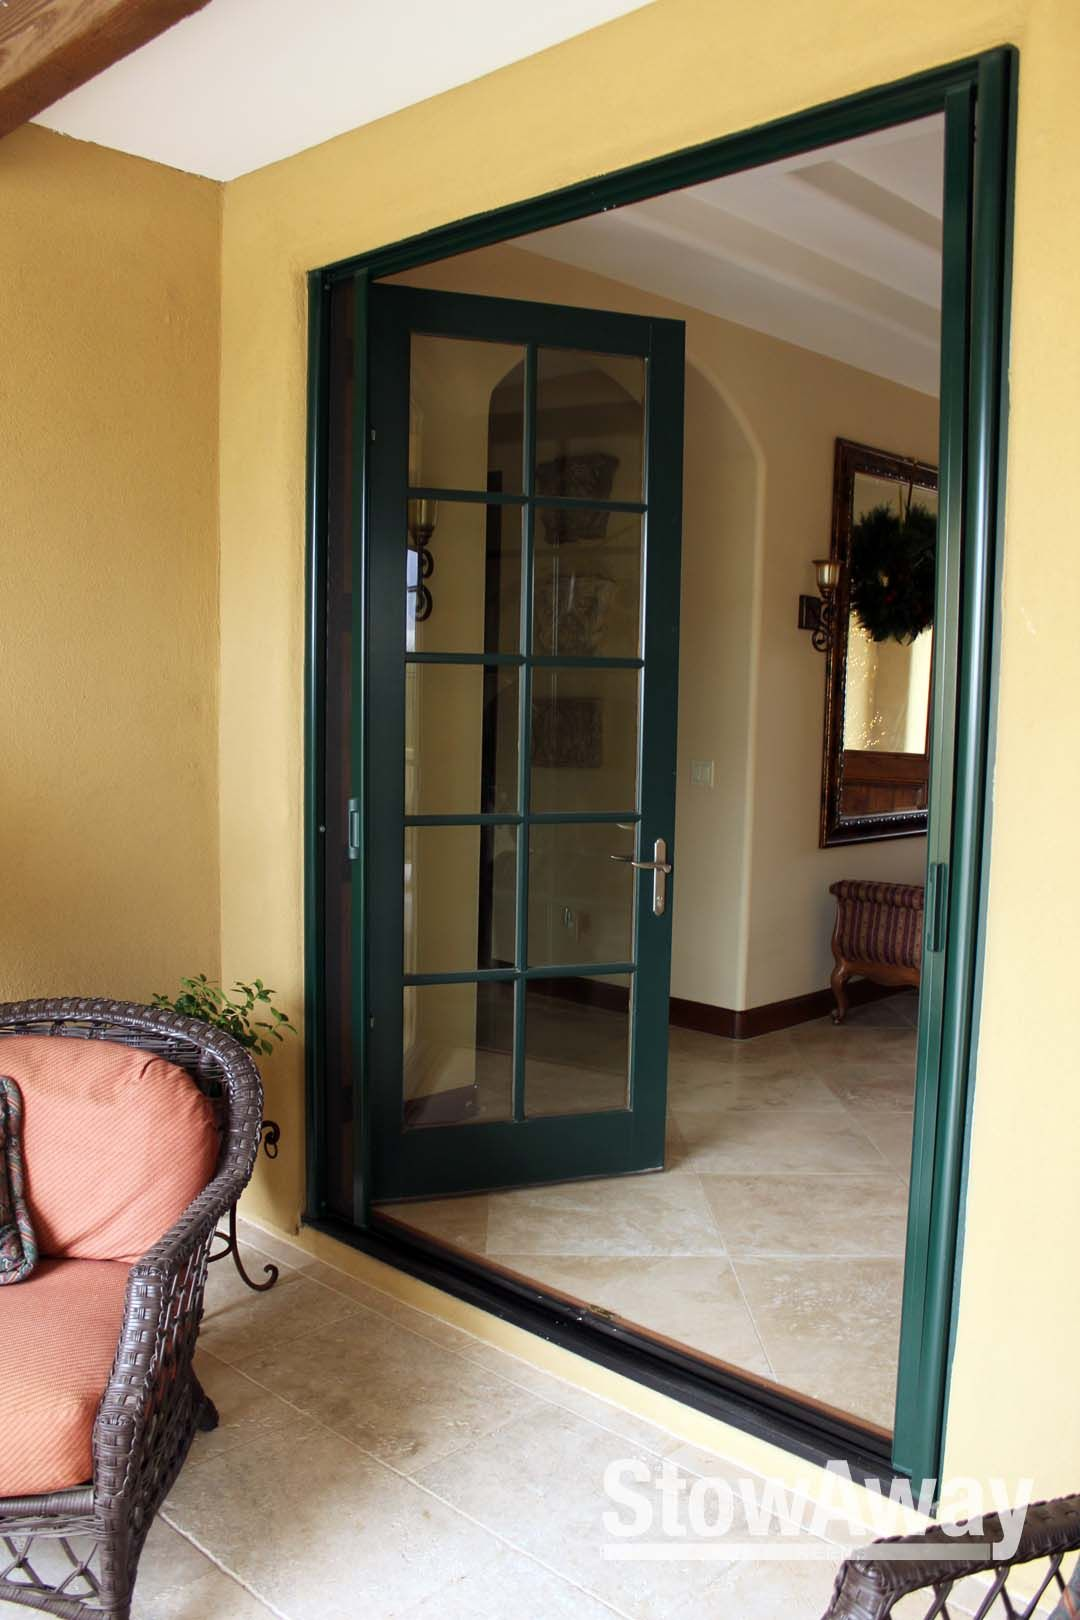 Retractable Screens For Your Door To Keep The Bugs Out And Let The